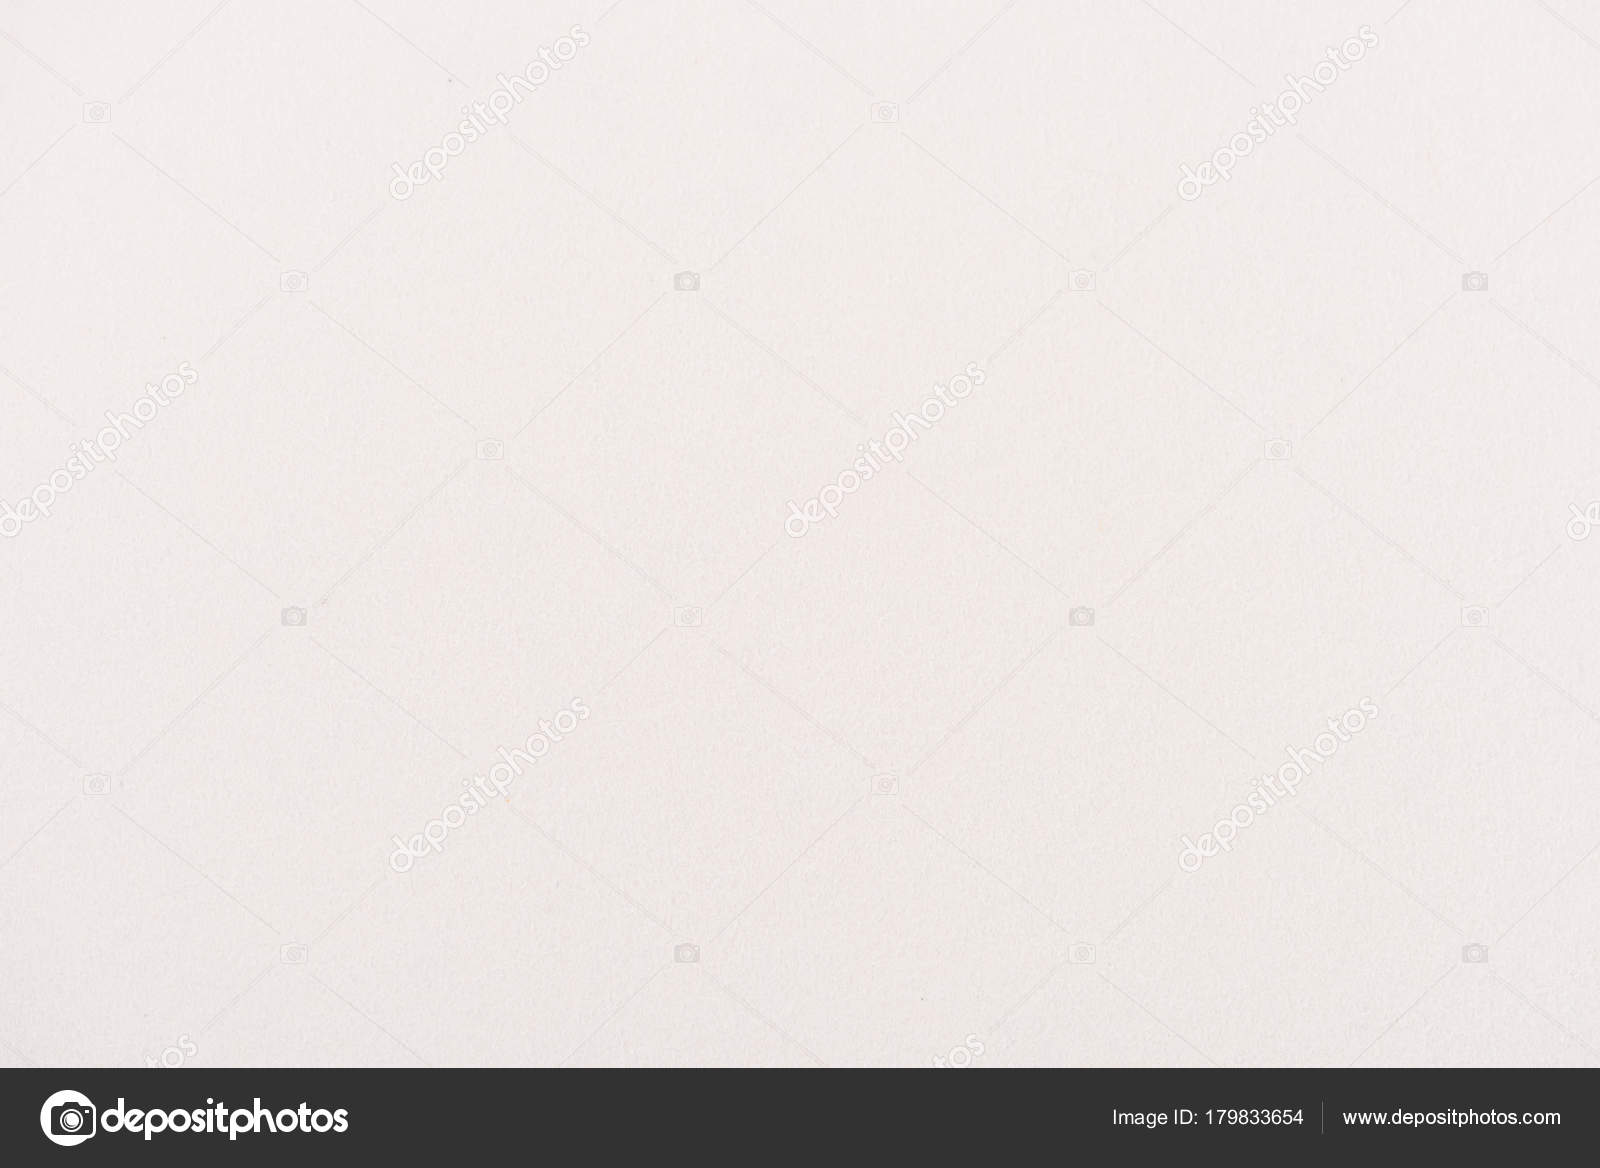 Papier Texture Beige Texture Beige Color Paper Background Stock Photo C Micenin 179833654